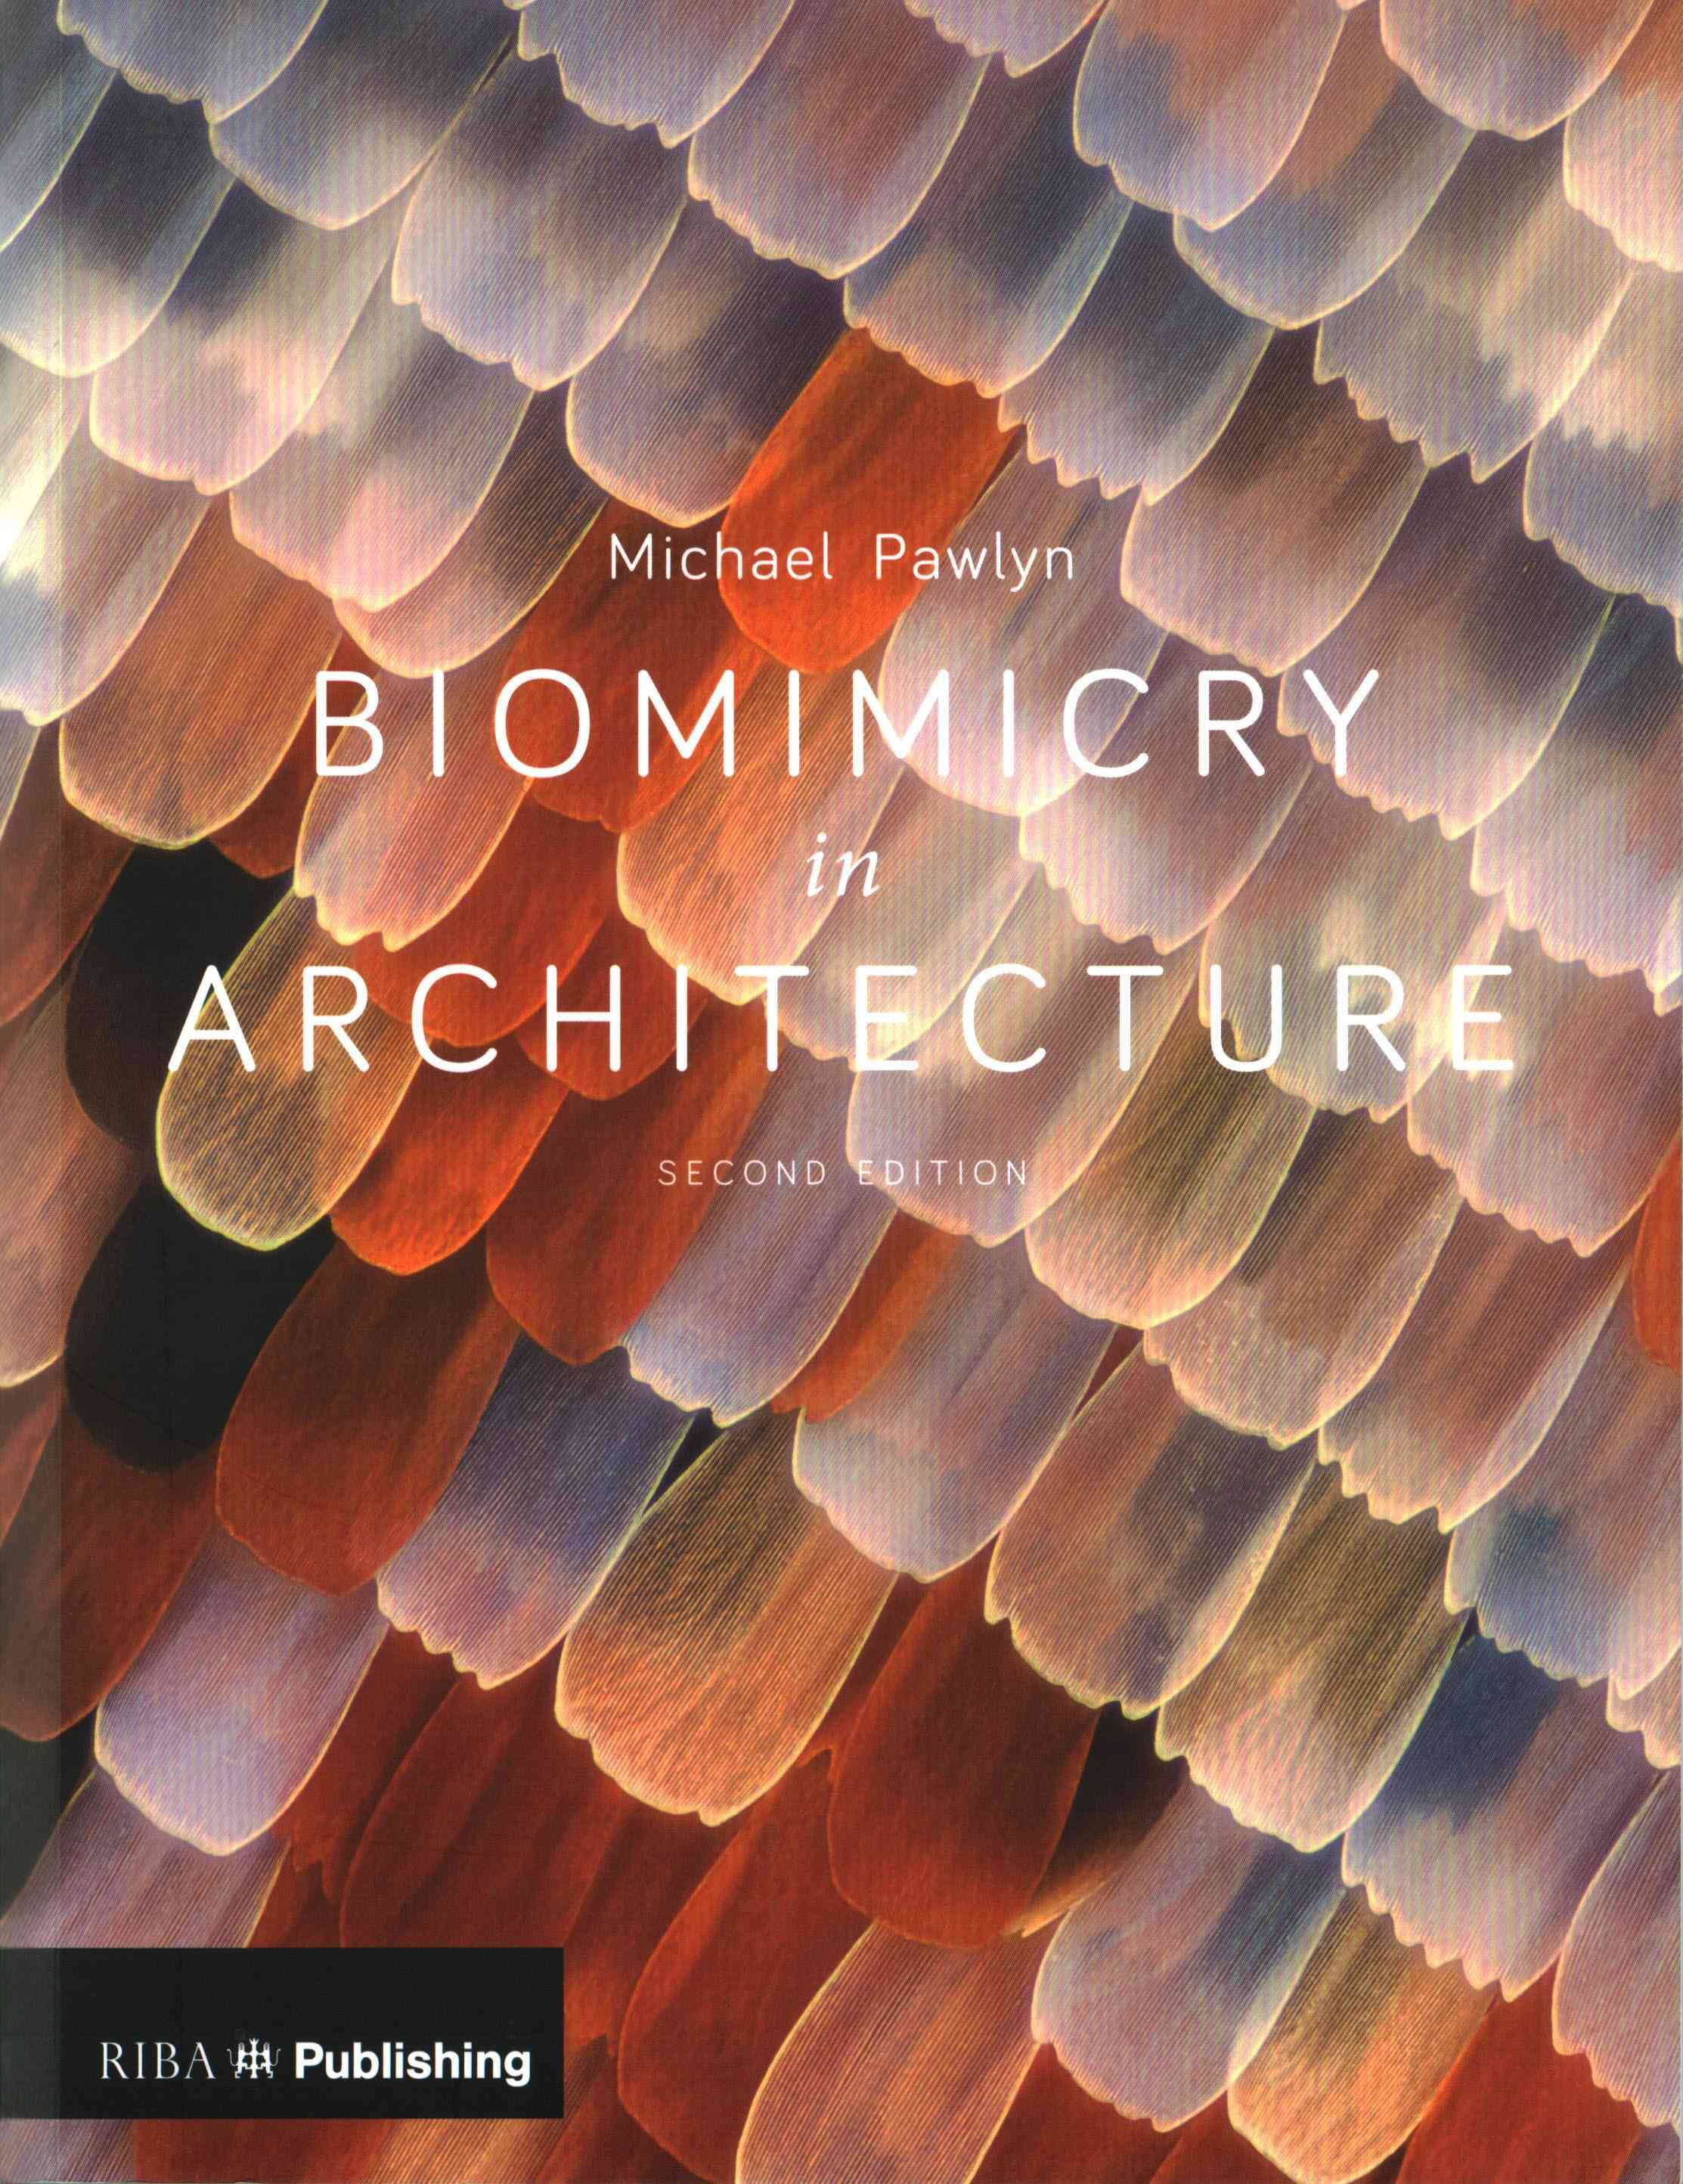 Biomimicry in Architecture 2nd Edition